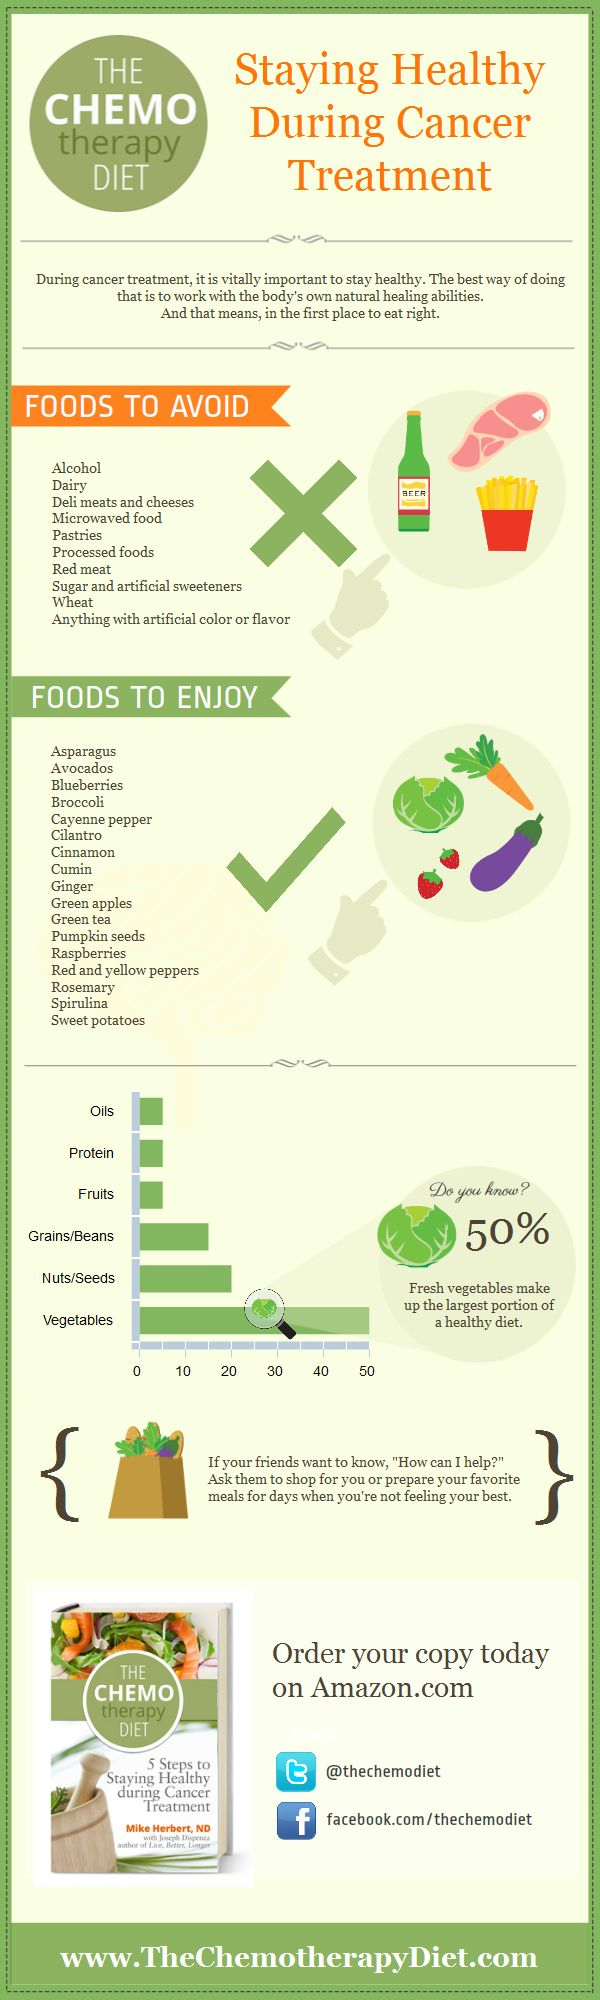 What Foods Have Iodine In Them Good For Radiation